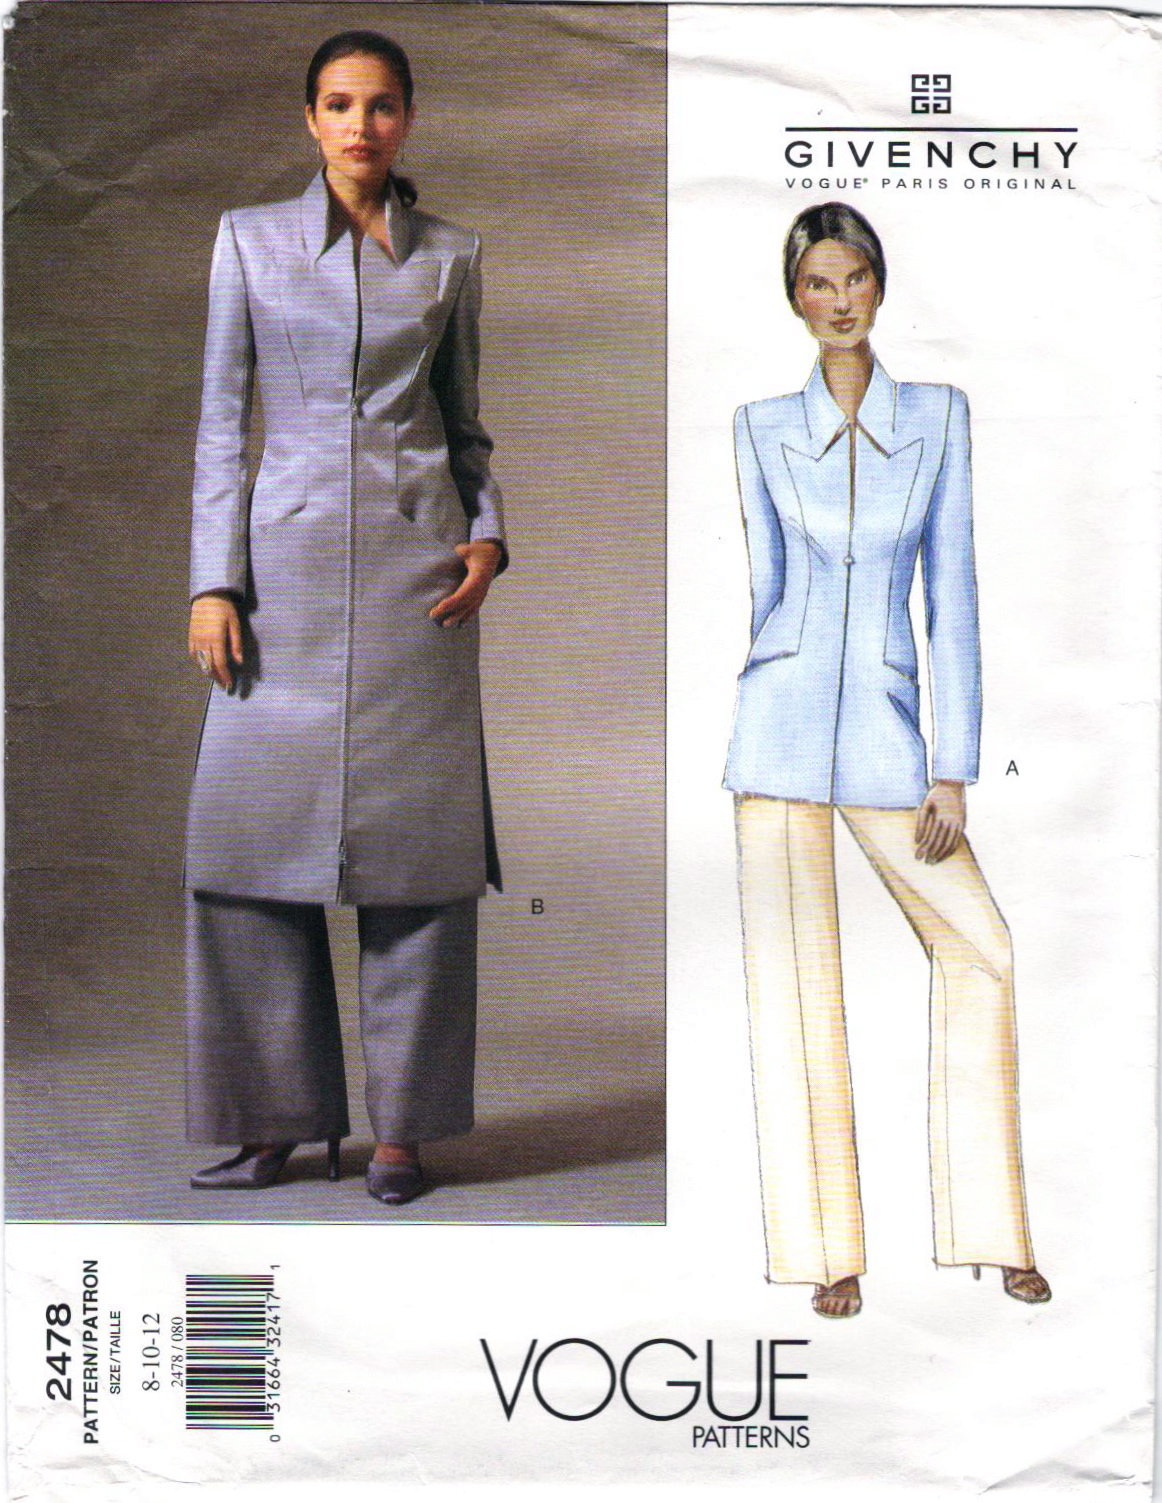 Alexander McQueen for Givenchy: Vogue Patterns, Part 3 ...